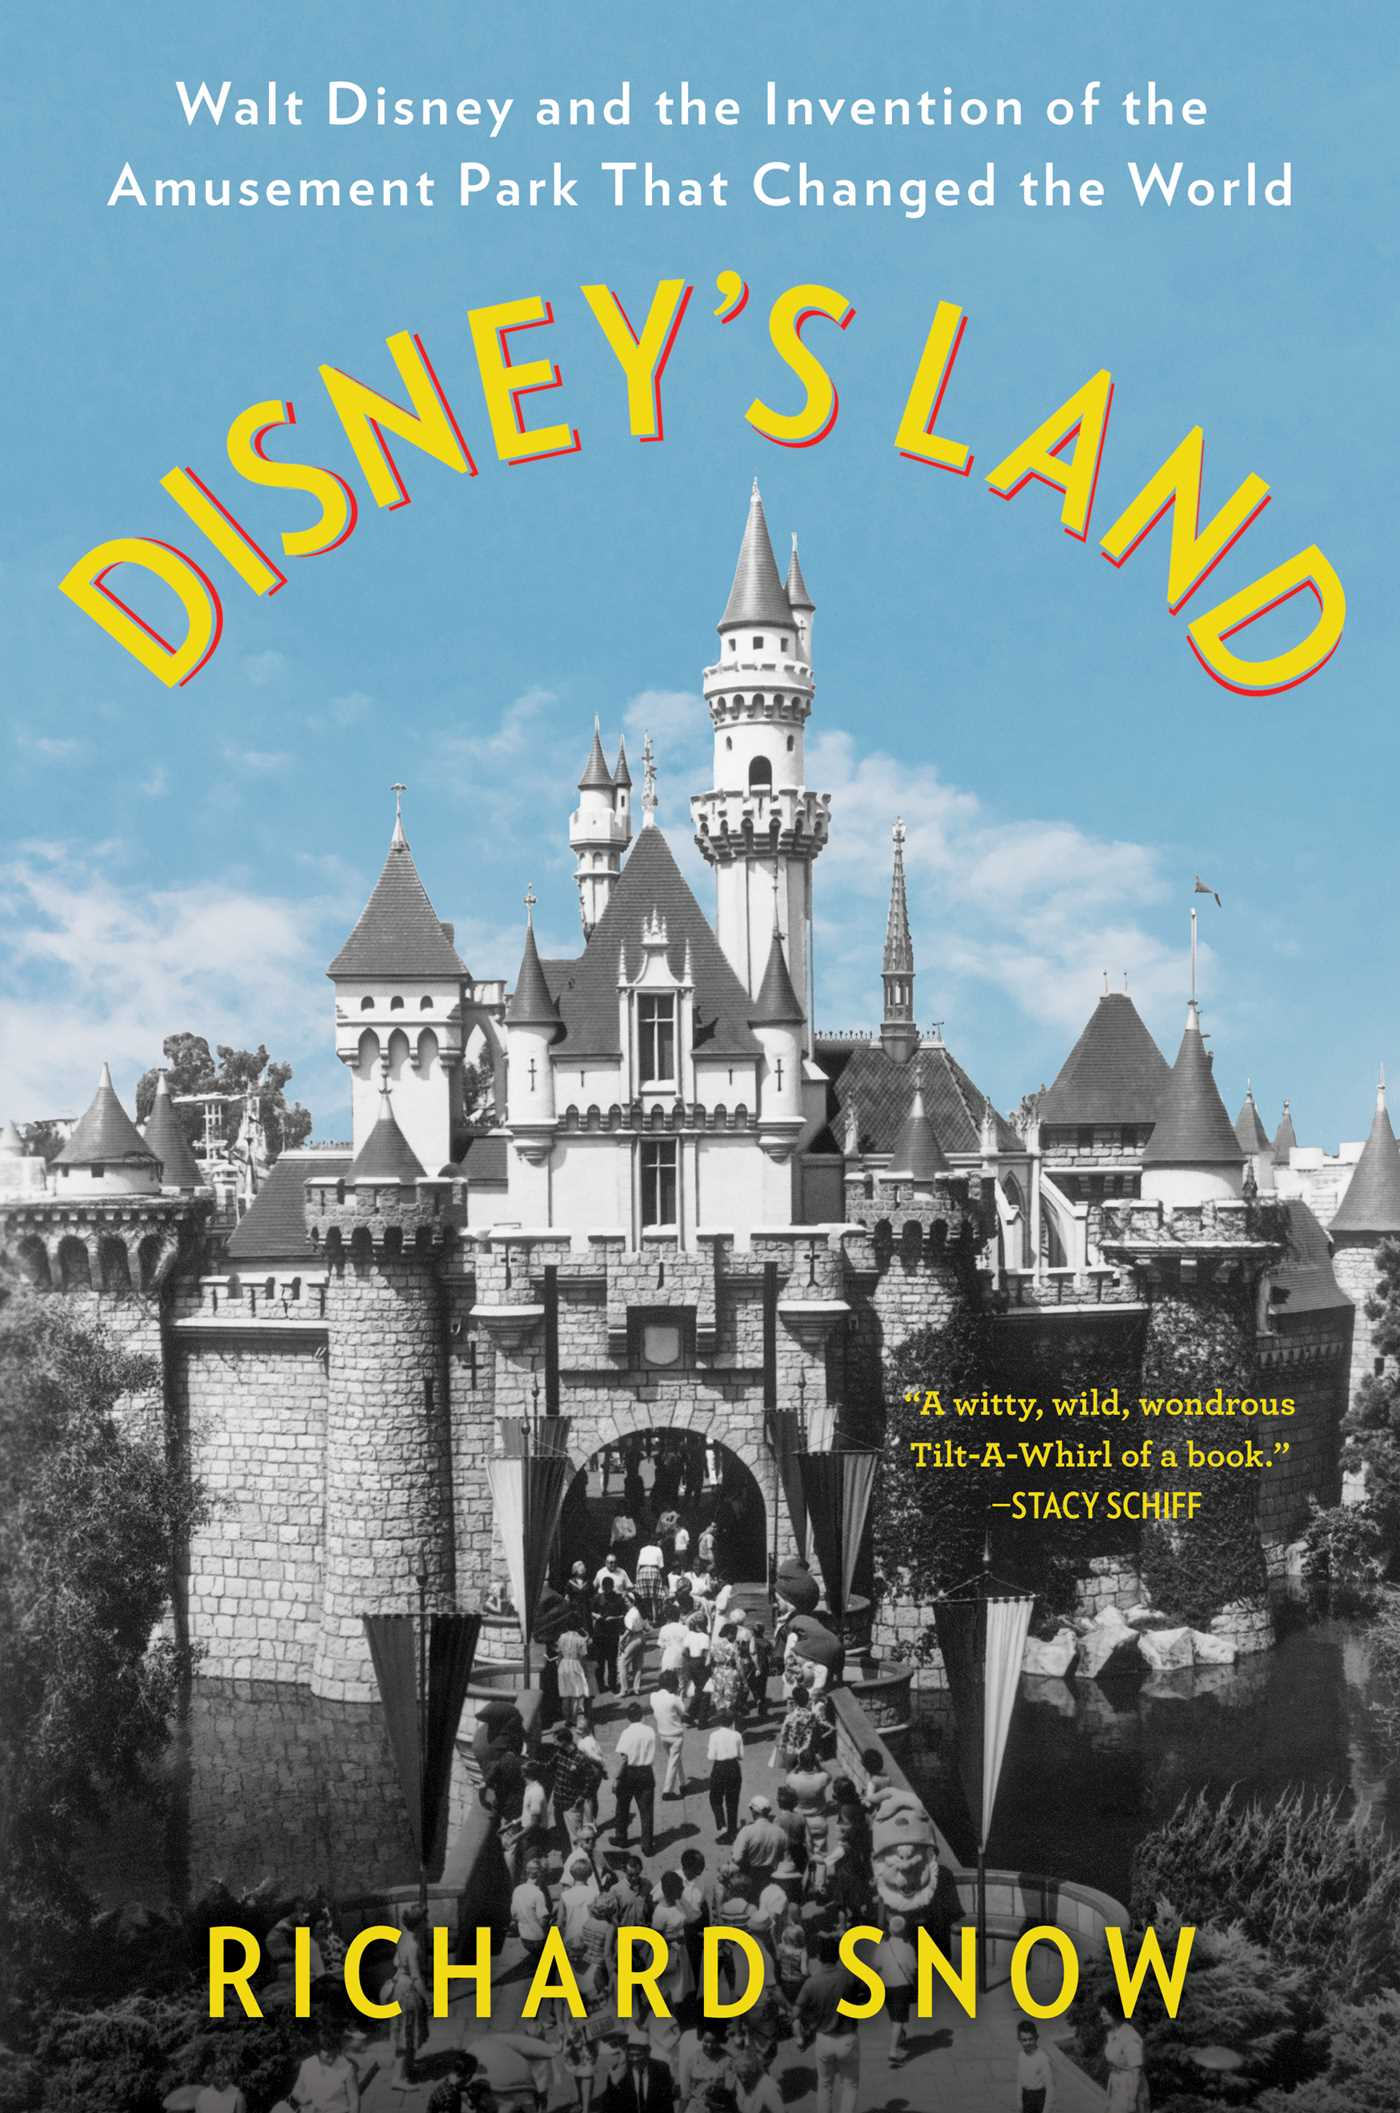 [PDF] [EPUB] Disney's Land: Walt Disney and the Invention of the Amusement Park That Changed the World Download by Richard Snow